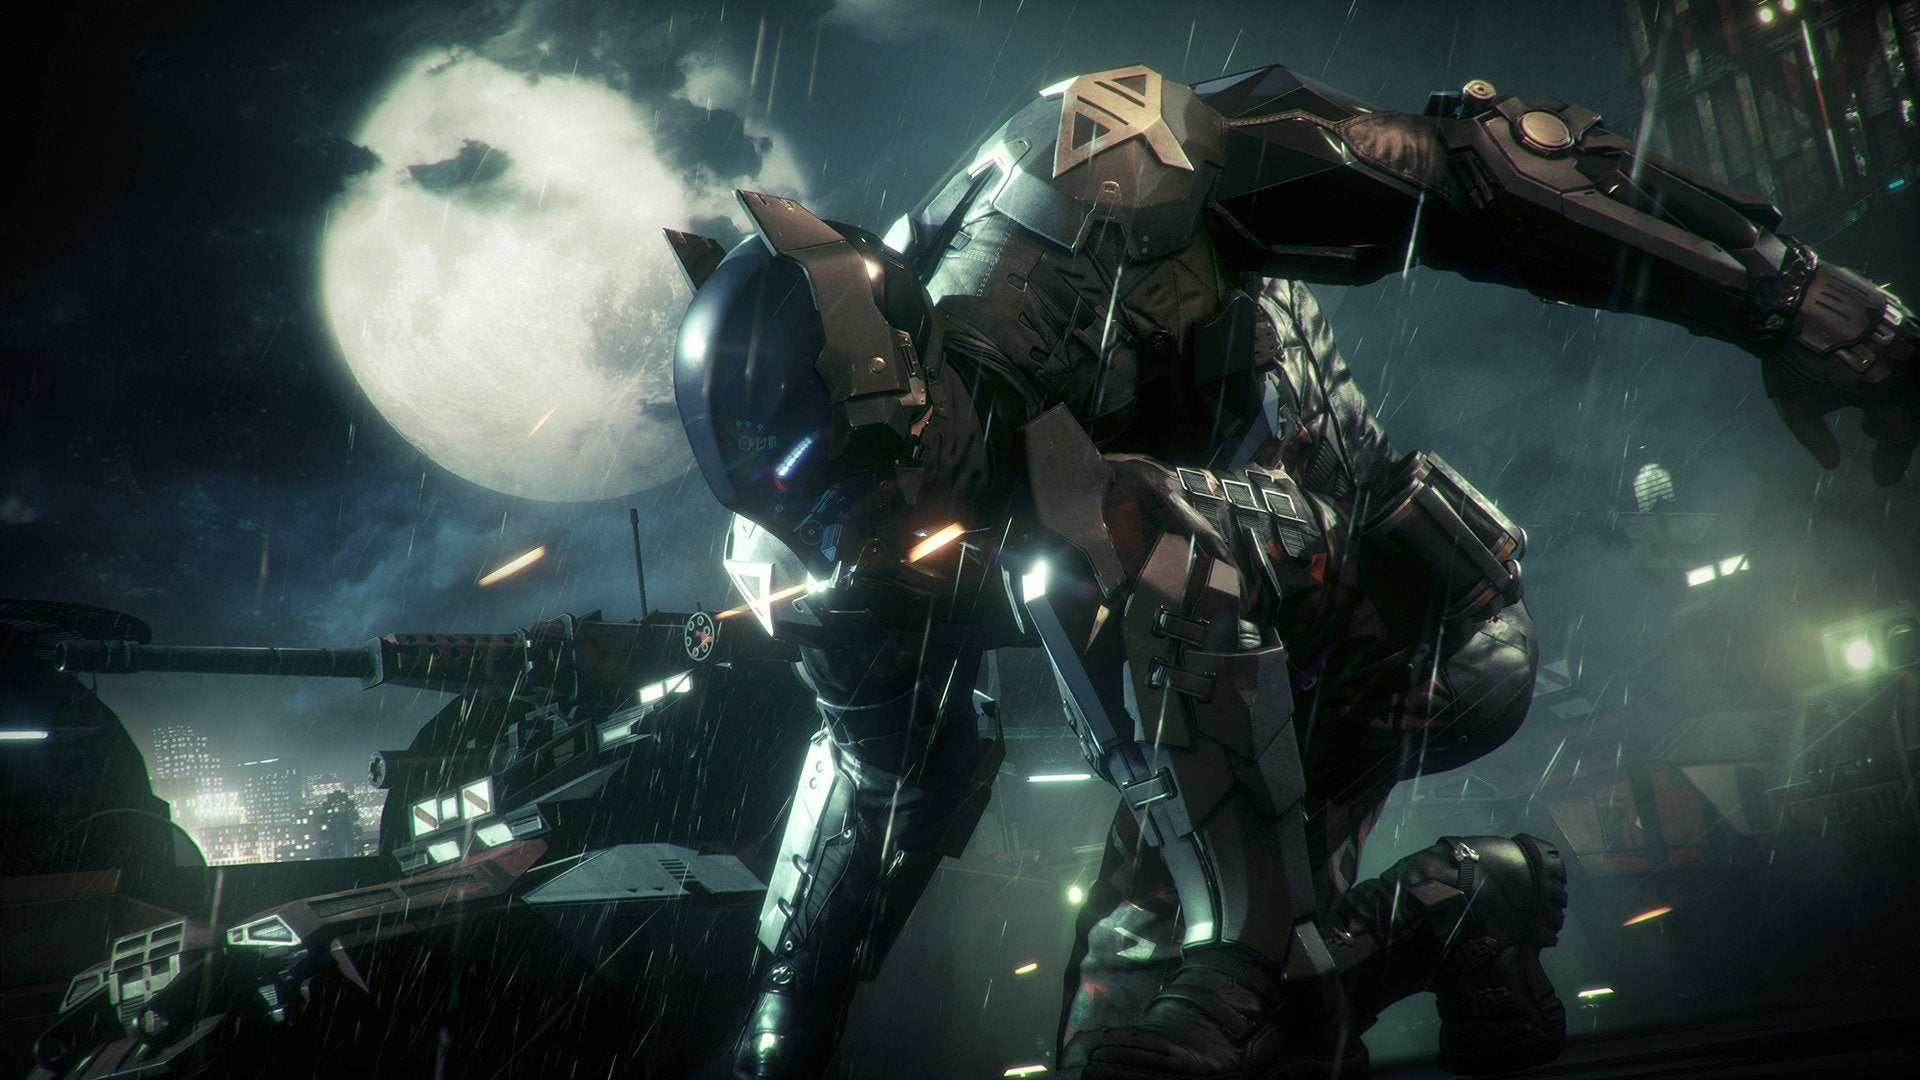 Sounds Like Batman: Arkham Knight Will Be Surprisingly Violent